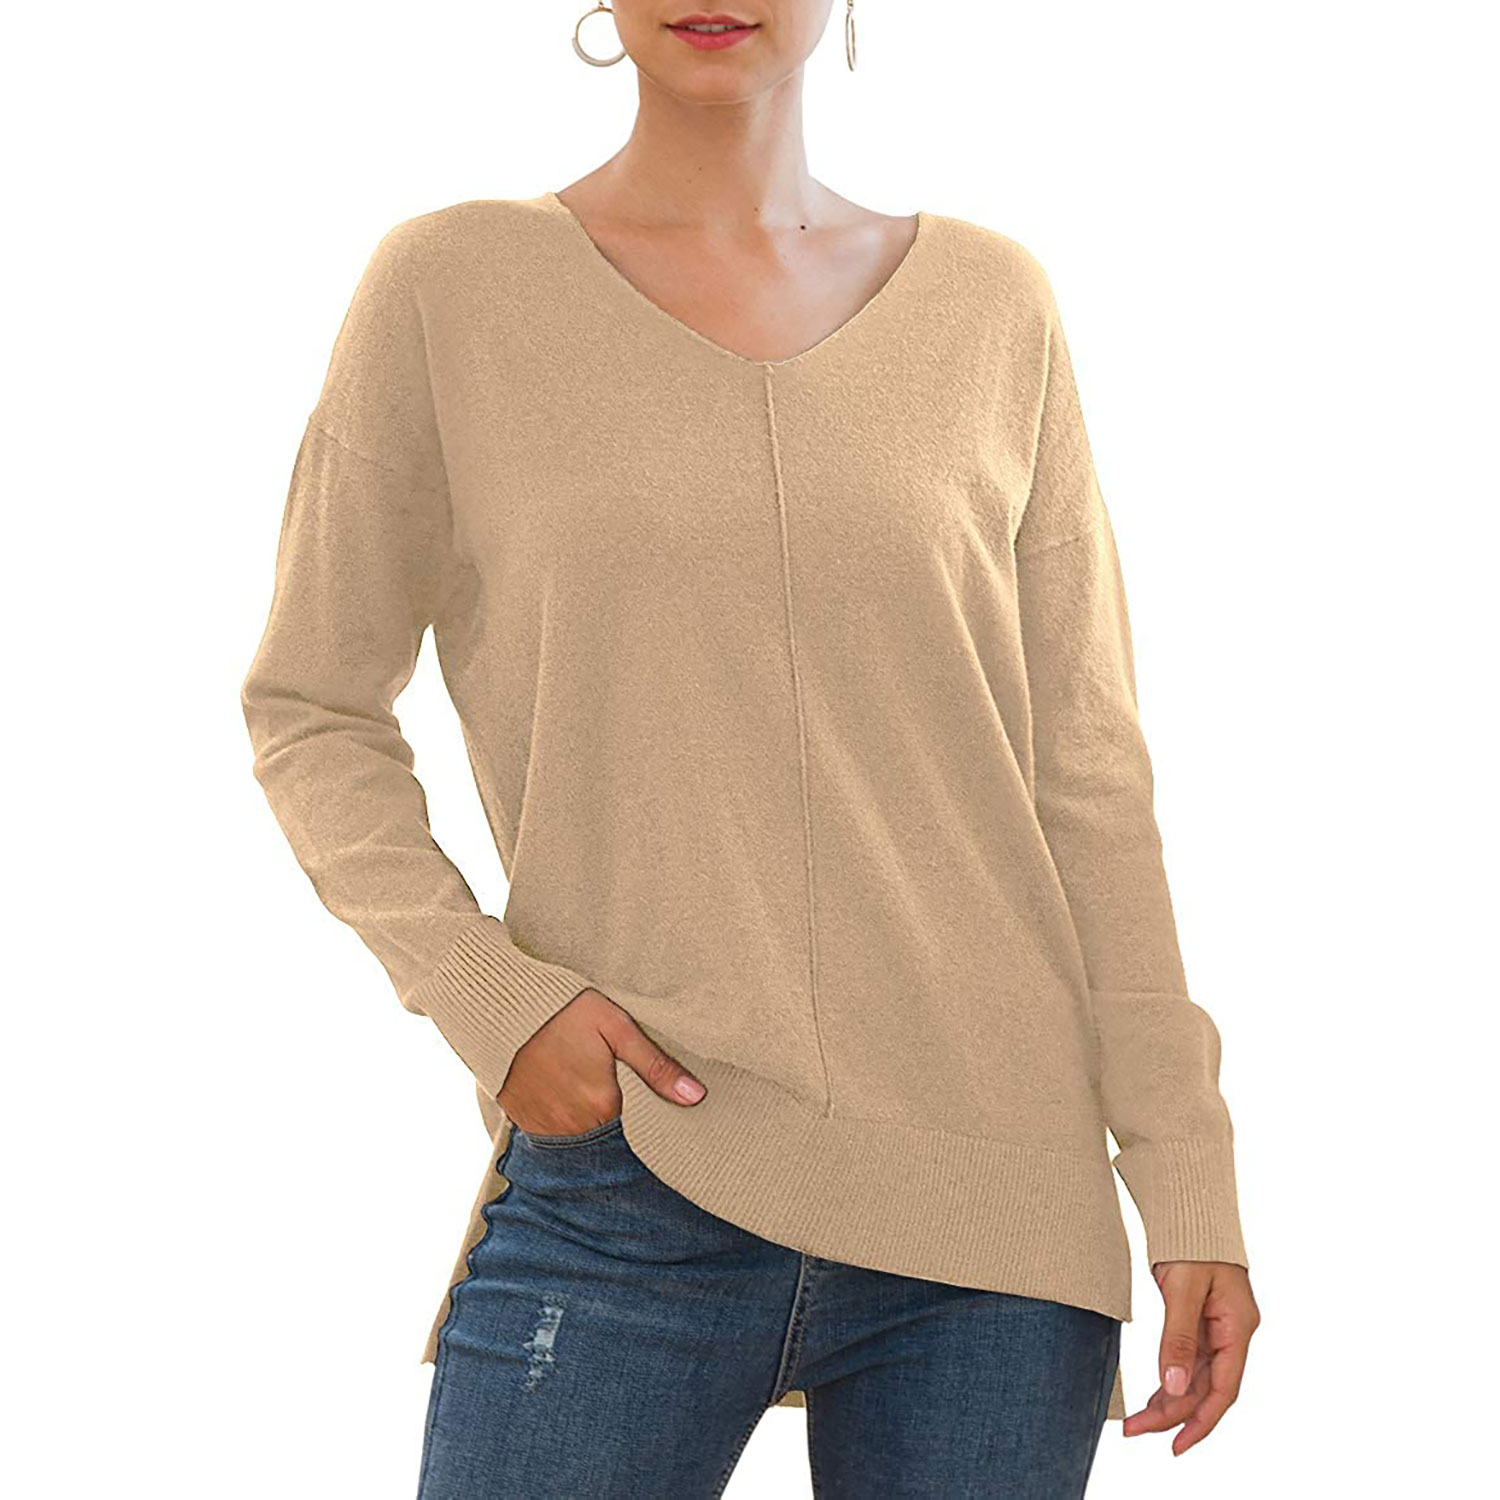 Jouica v-neck batwing sleeve sweater